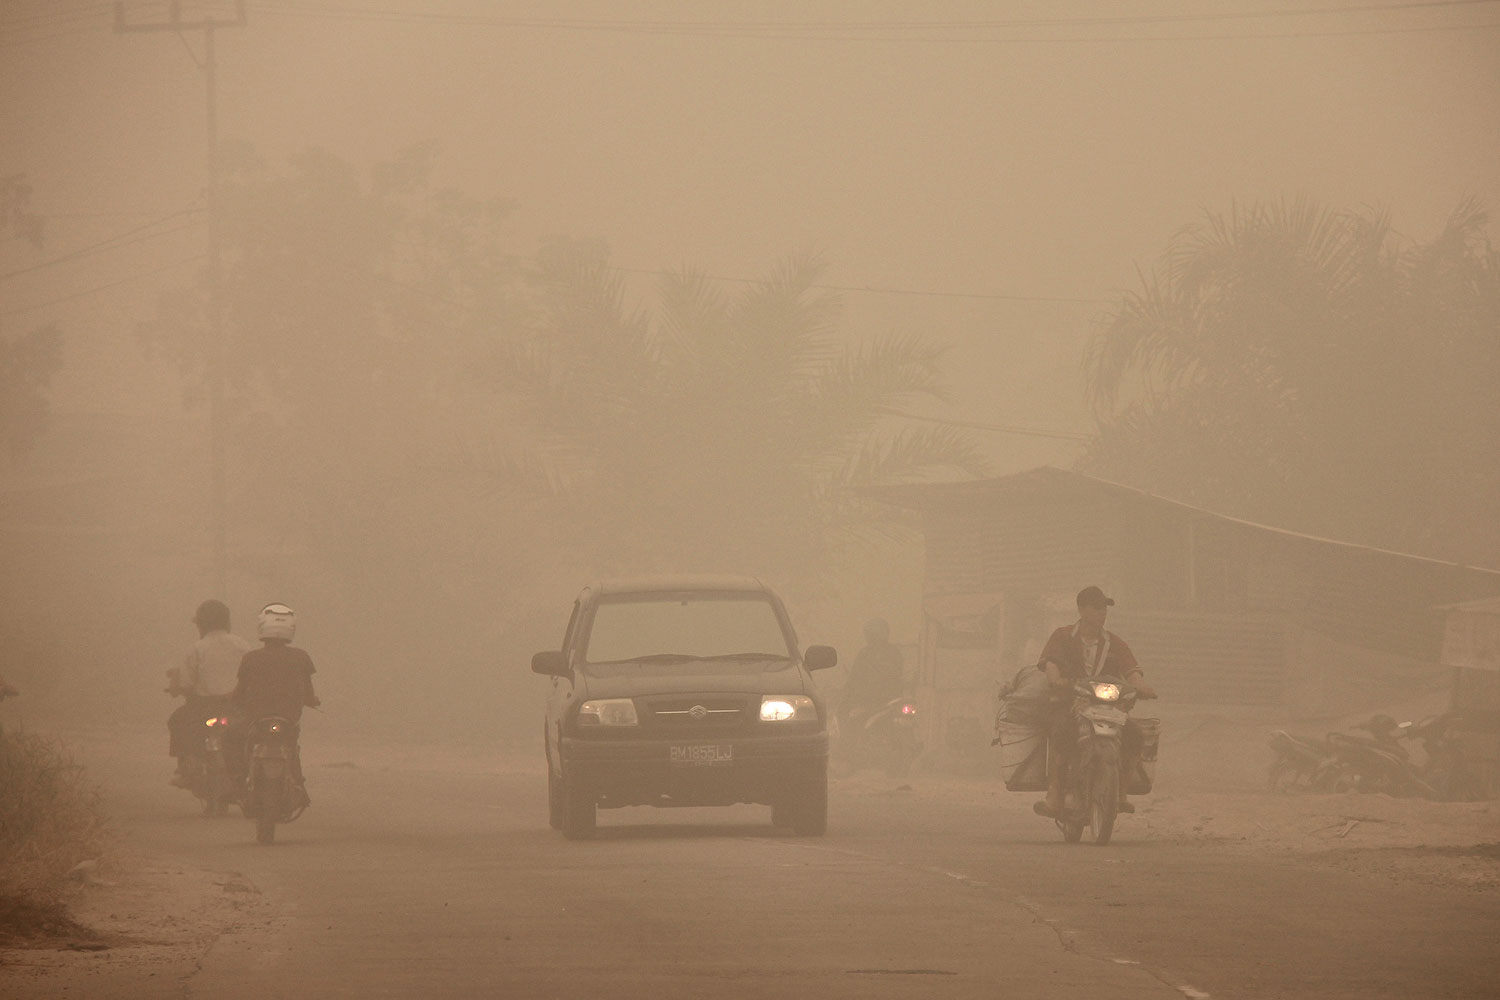 Indonesian motorists travel under a blanket of haze in Dumai town located in Riau province in Indonesia's Sumatra island on March 3, 2014. Riau province, the heart of a Southeast Asian smog crisis last year, has declared a state of emergency after being blanketed in thick haze from forest fires